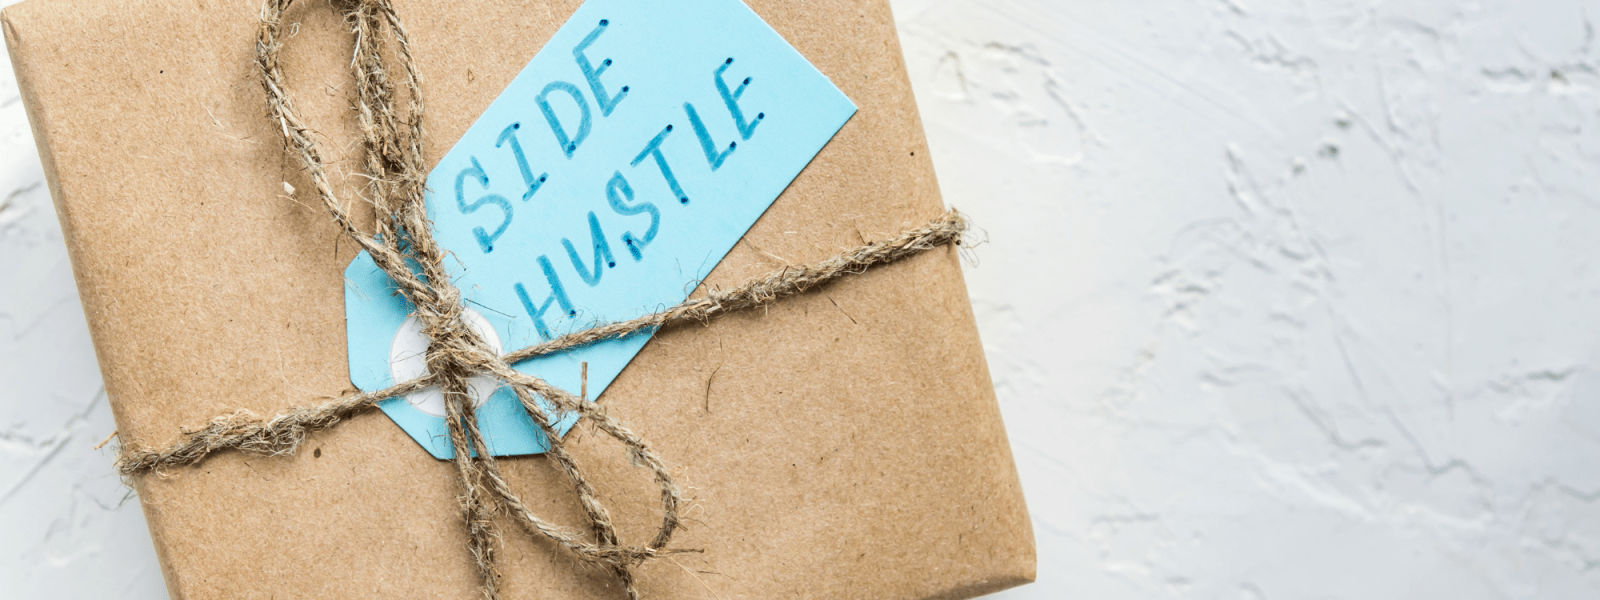 10 Of The Best Side Hustles At Christmas: Earn extra money!